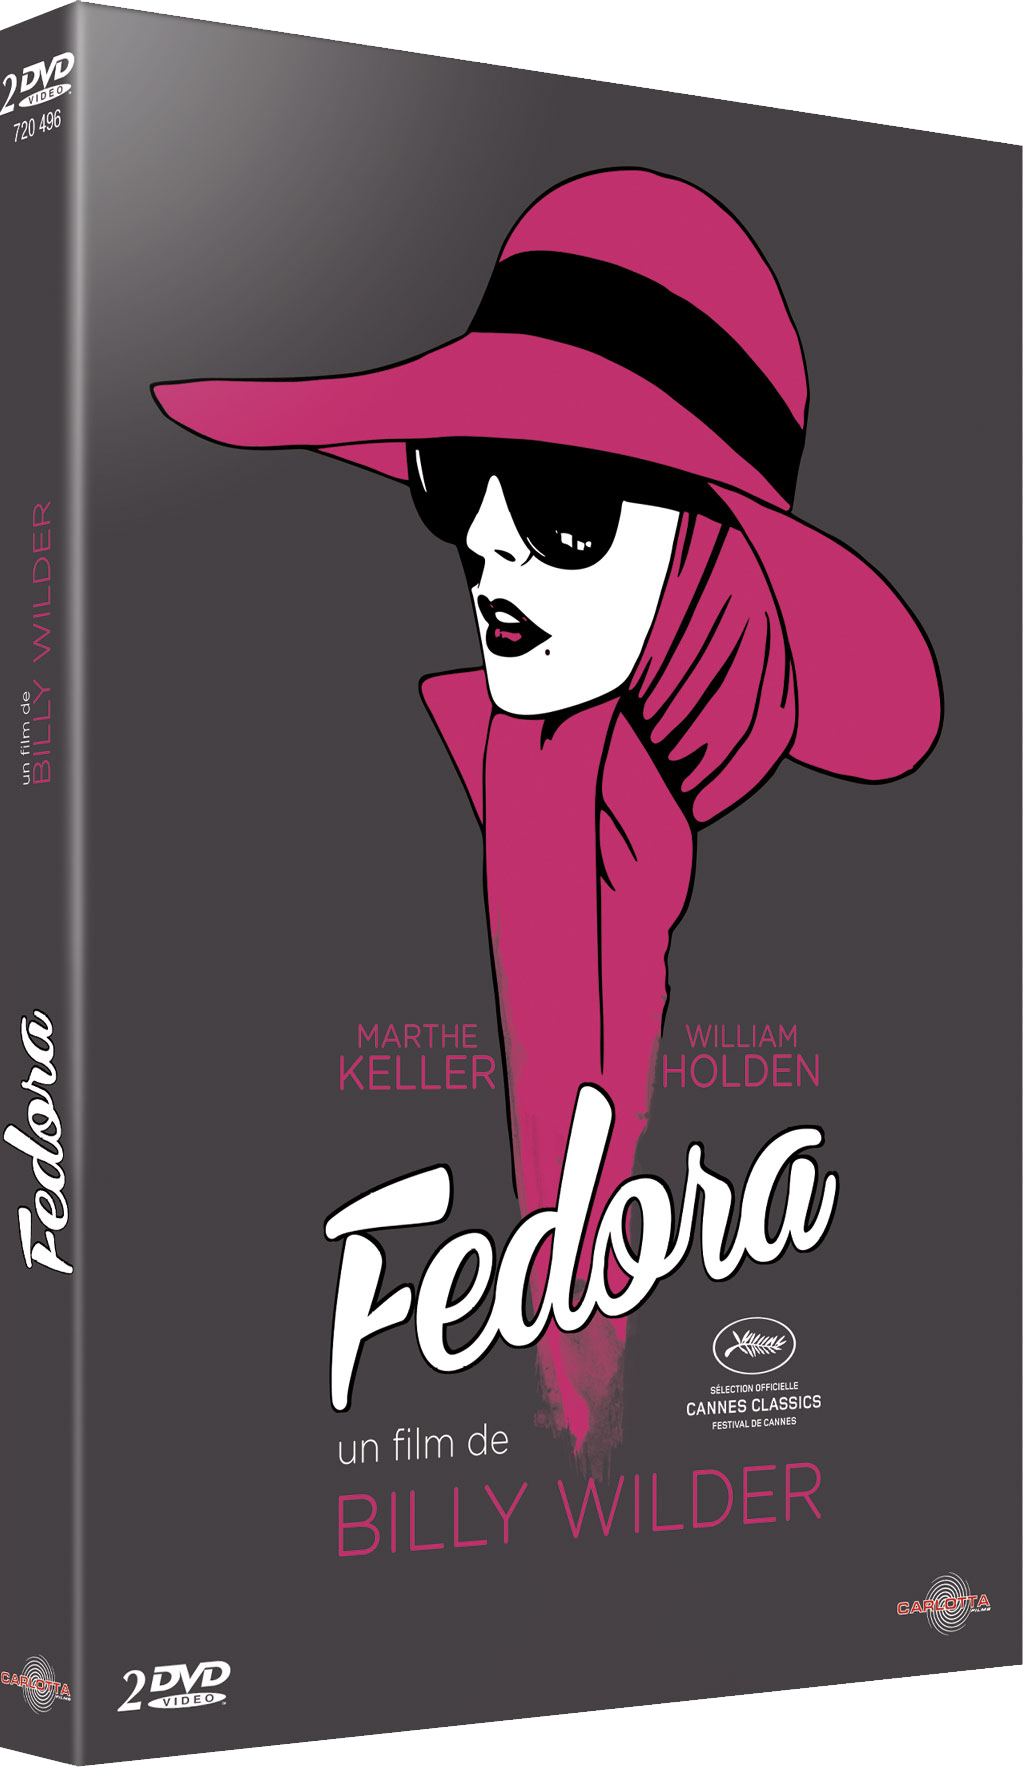 Fedora de Billy Wilder - CARLOTTA FILMS - La Boutique